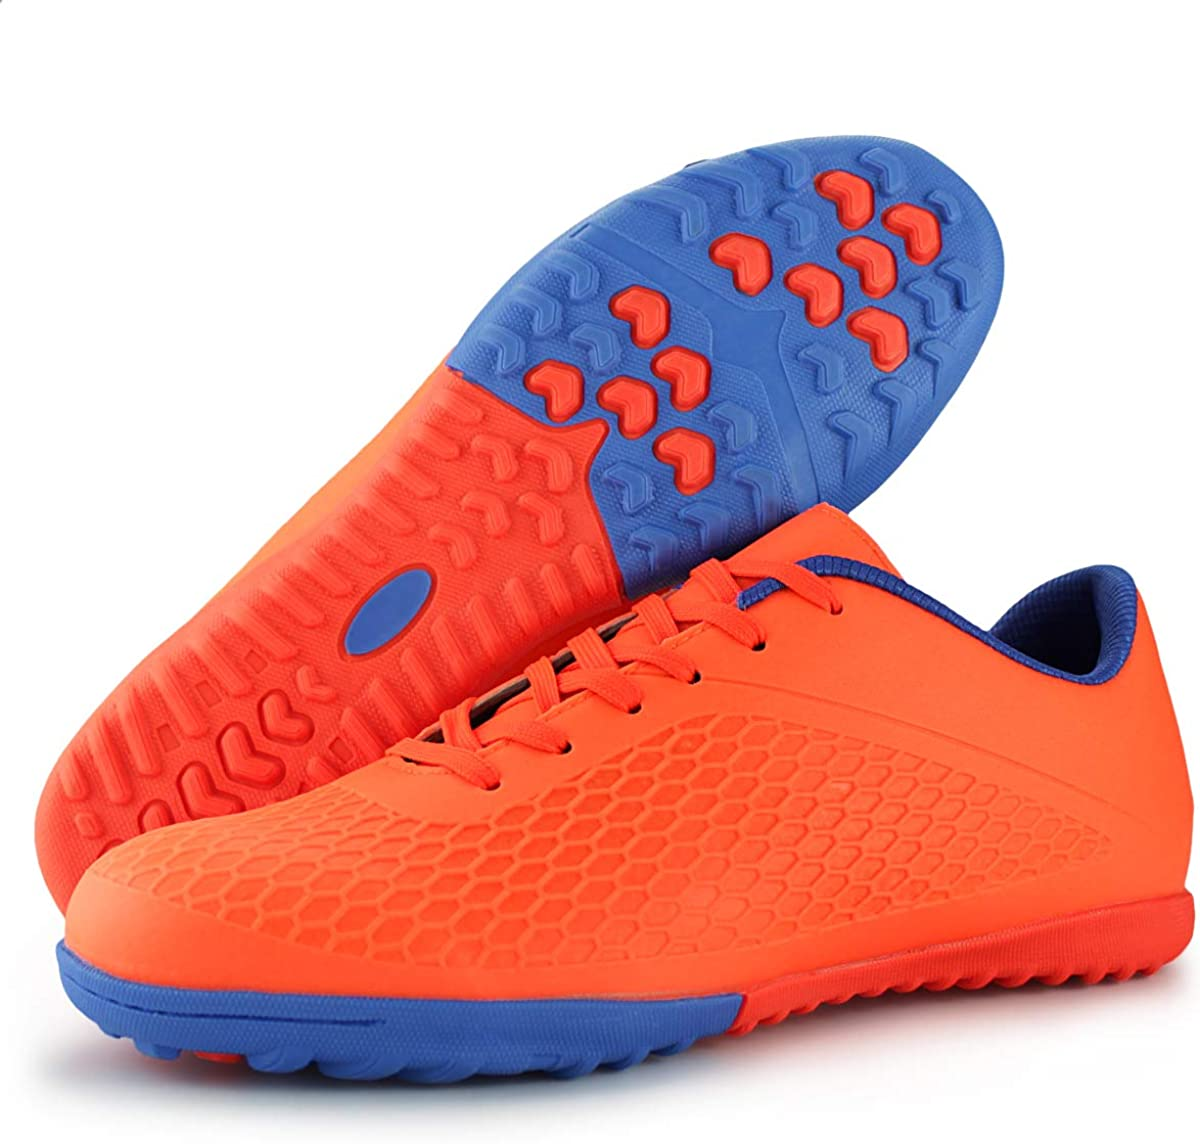 Hawkwell Mens Turf Soccer Shoes Outdoor//Indoor Comfortable Soccer Cleats